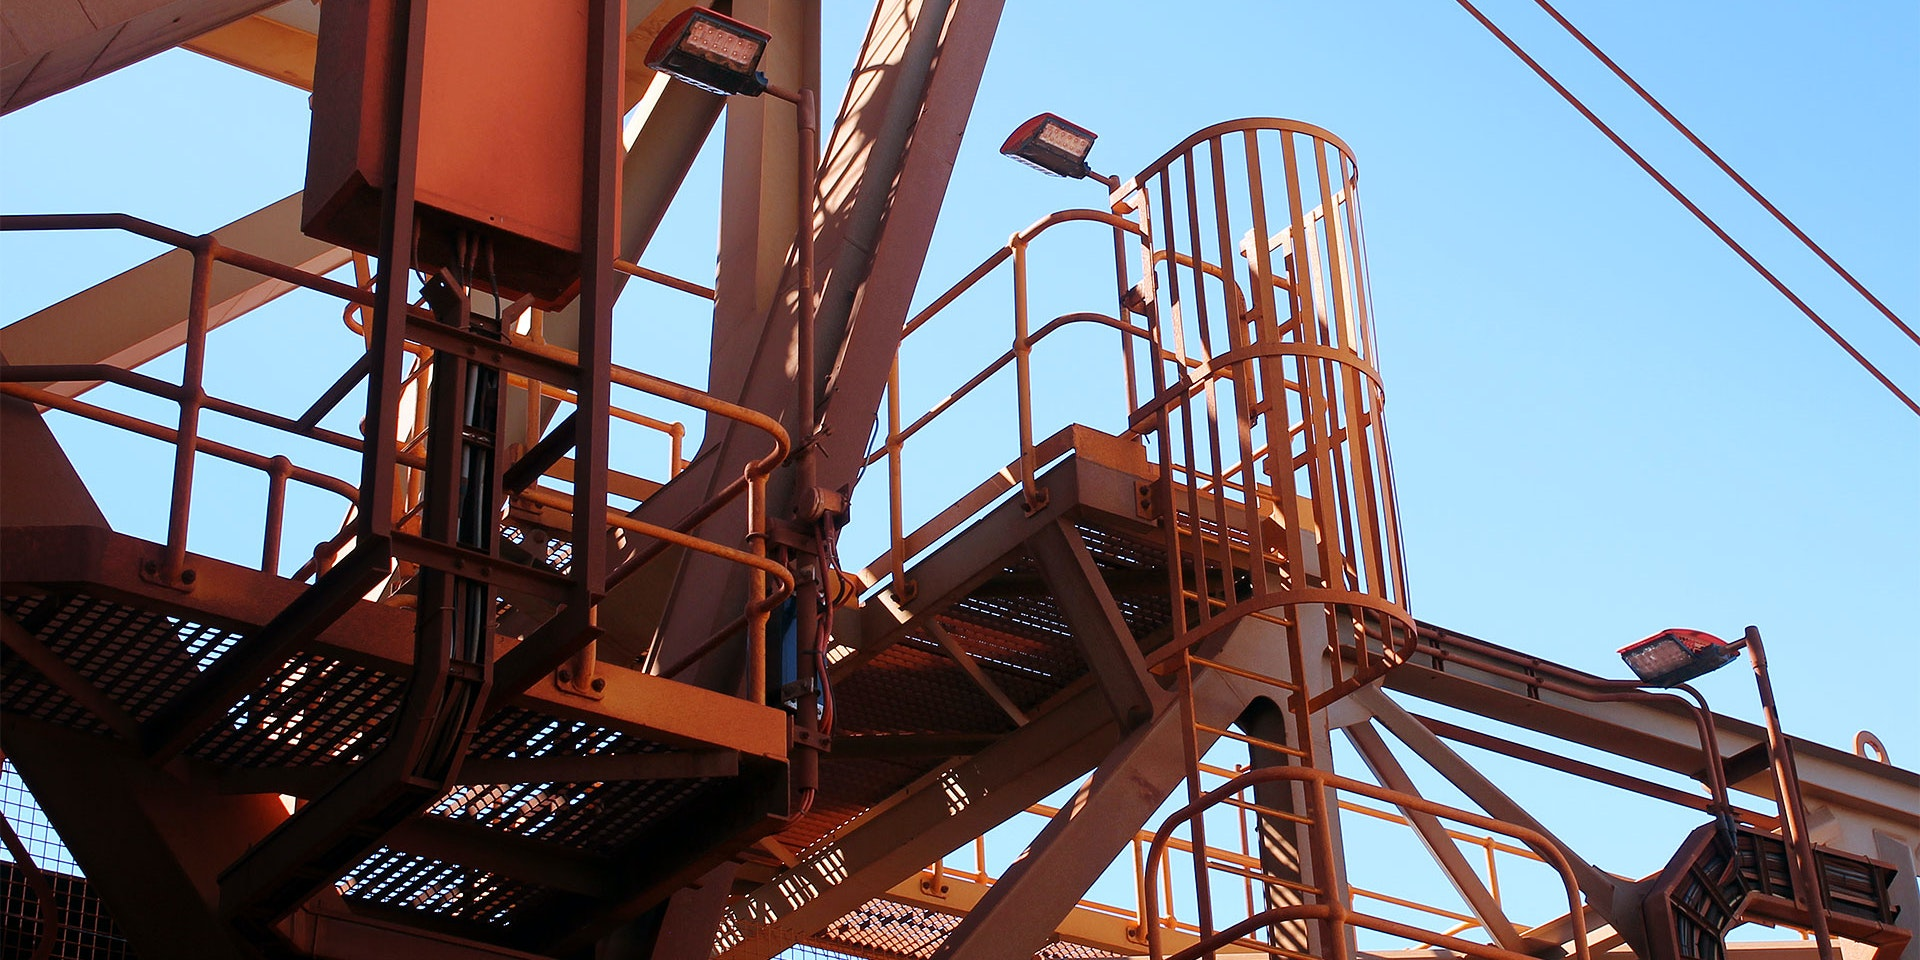 DLK LED Conveyor / Area Light in application, installed on a stacker reclaimer,  on stairwells and platforms